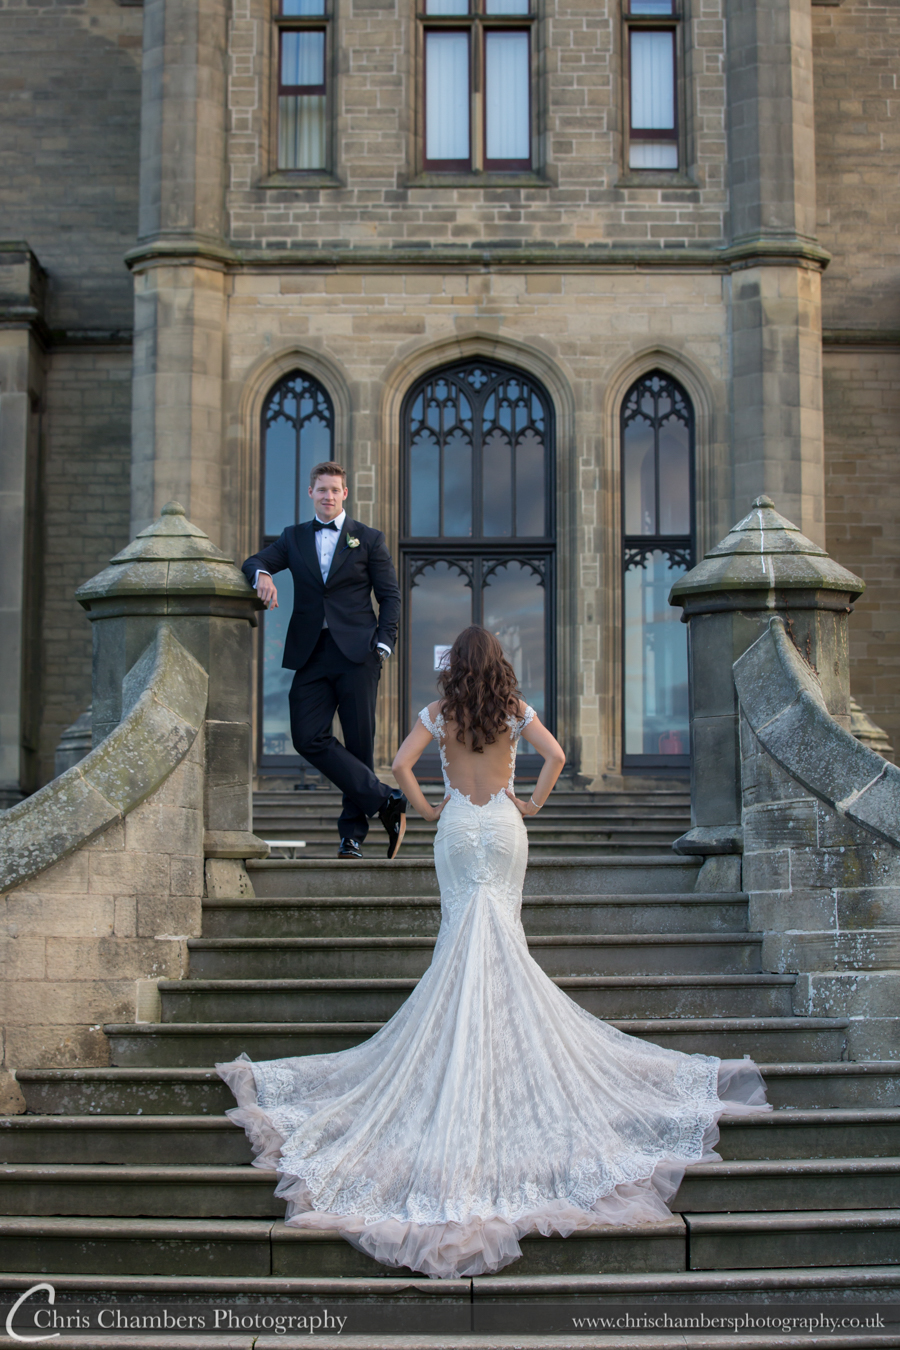 Allerton Castle Wedding Photographer Chris Chambers | Award Winning wedding photography | North Yorkshire Wedding Photographs | Allerton Castle Wedding Photography | Chris Chambers wedding photography | North Yorkshire photographer